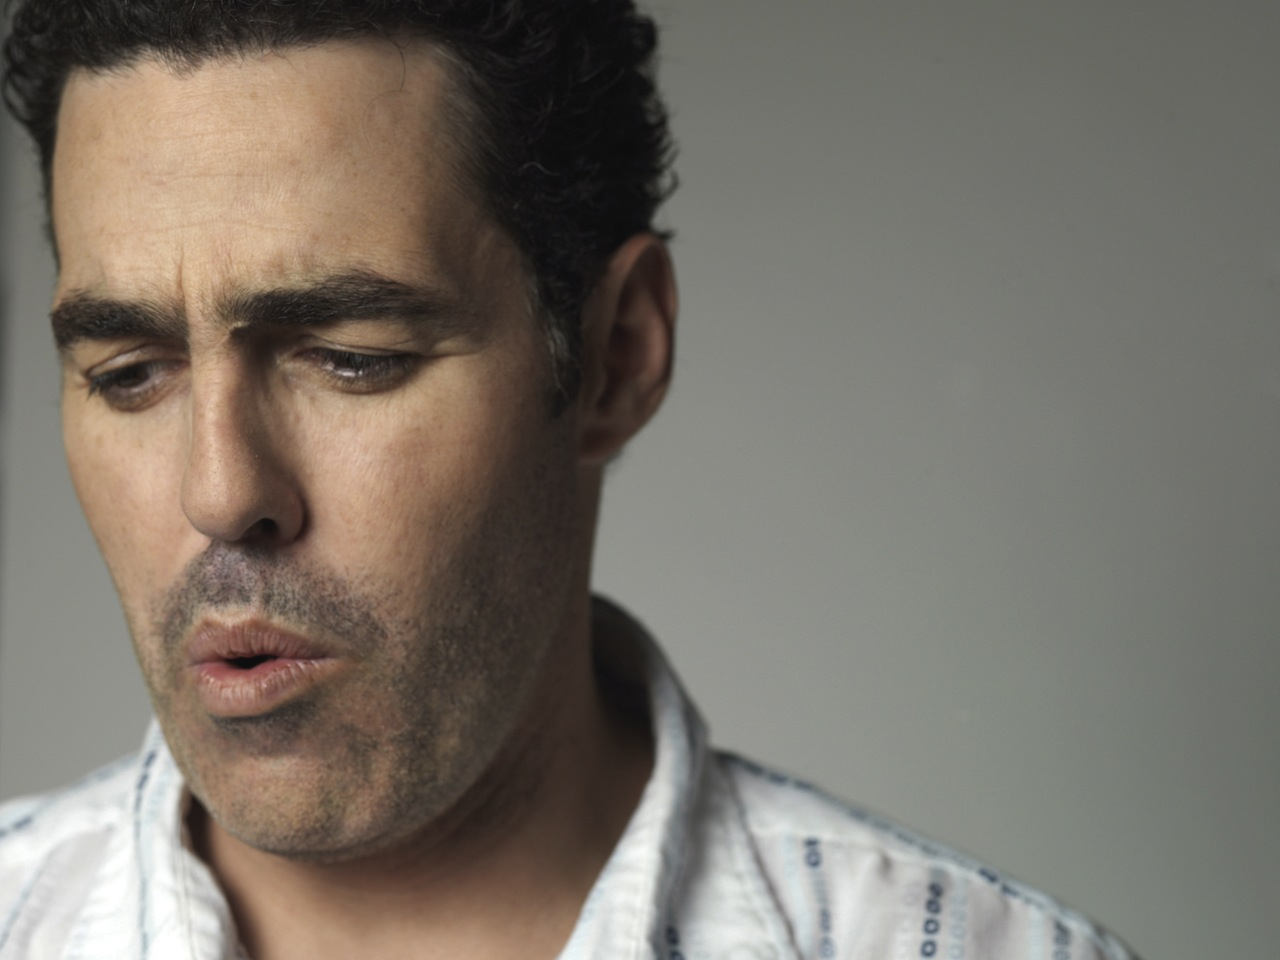 Adam Carolla: Obama's 'You Didn't Build That' Speech 'Anti-American'